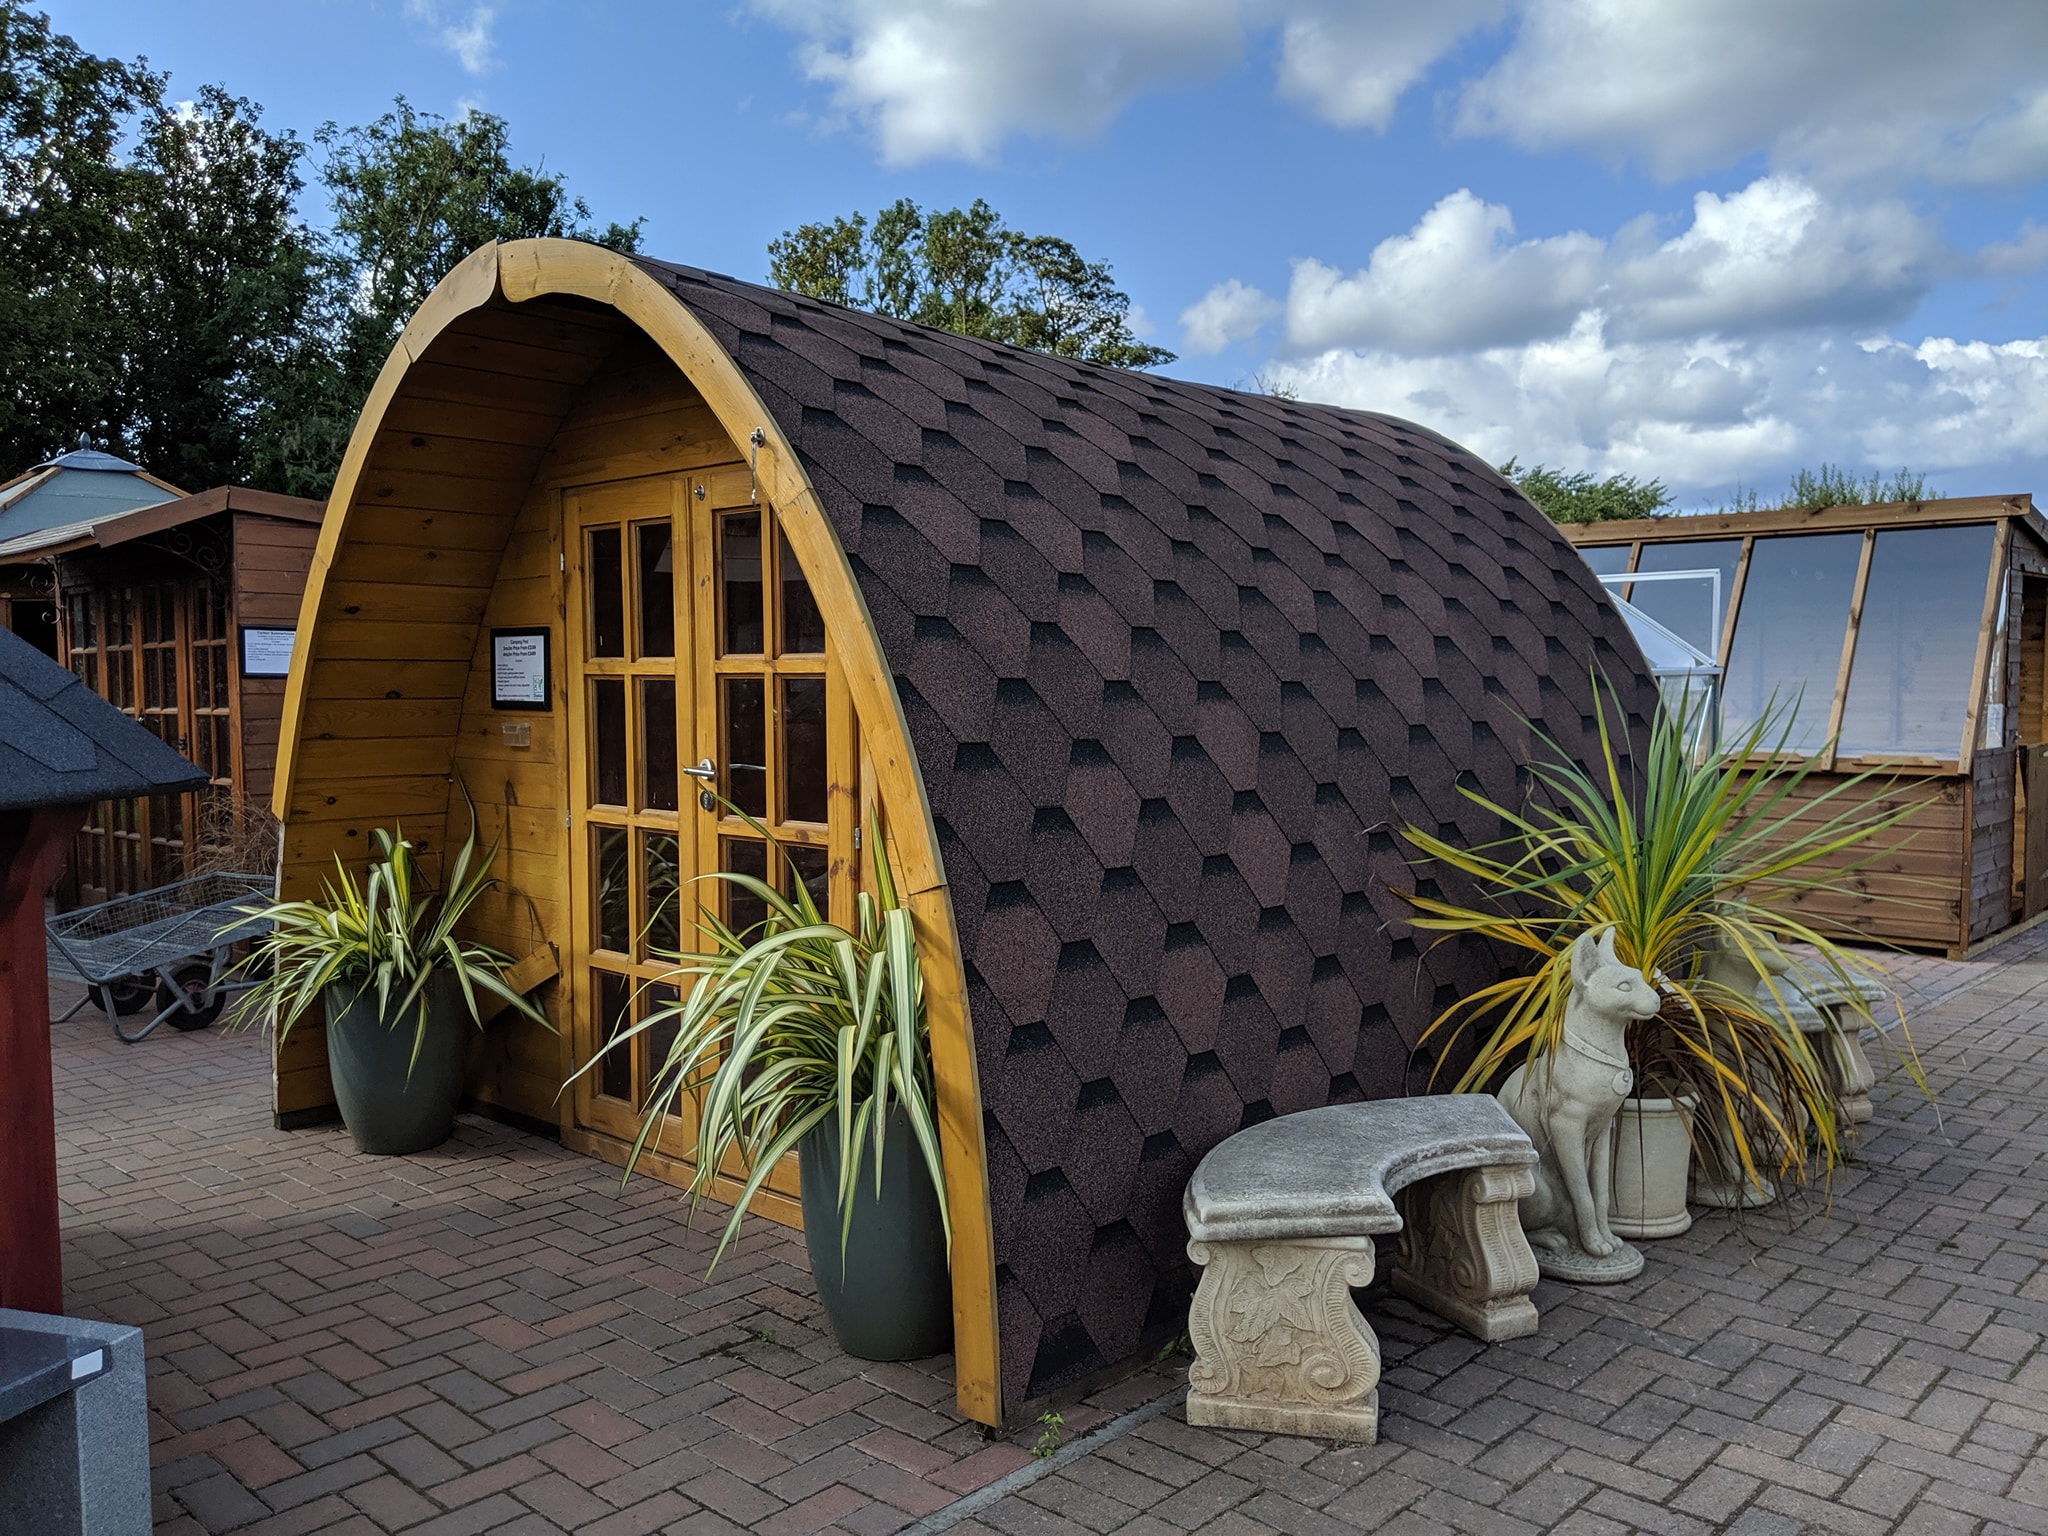 Bespoke Outdoor Buildings